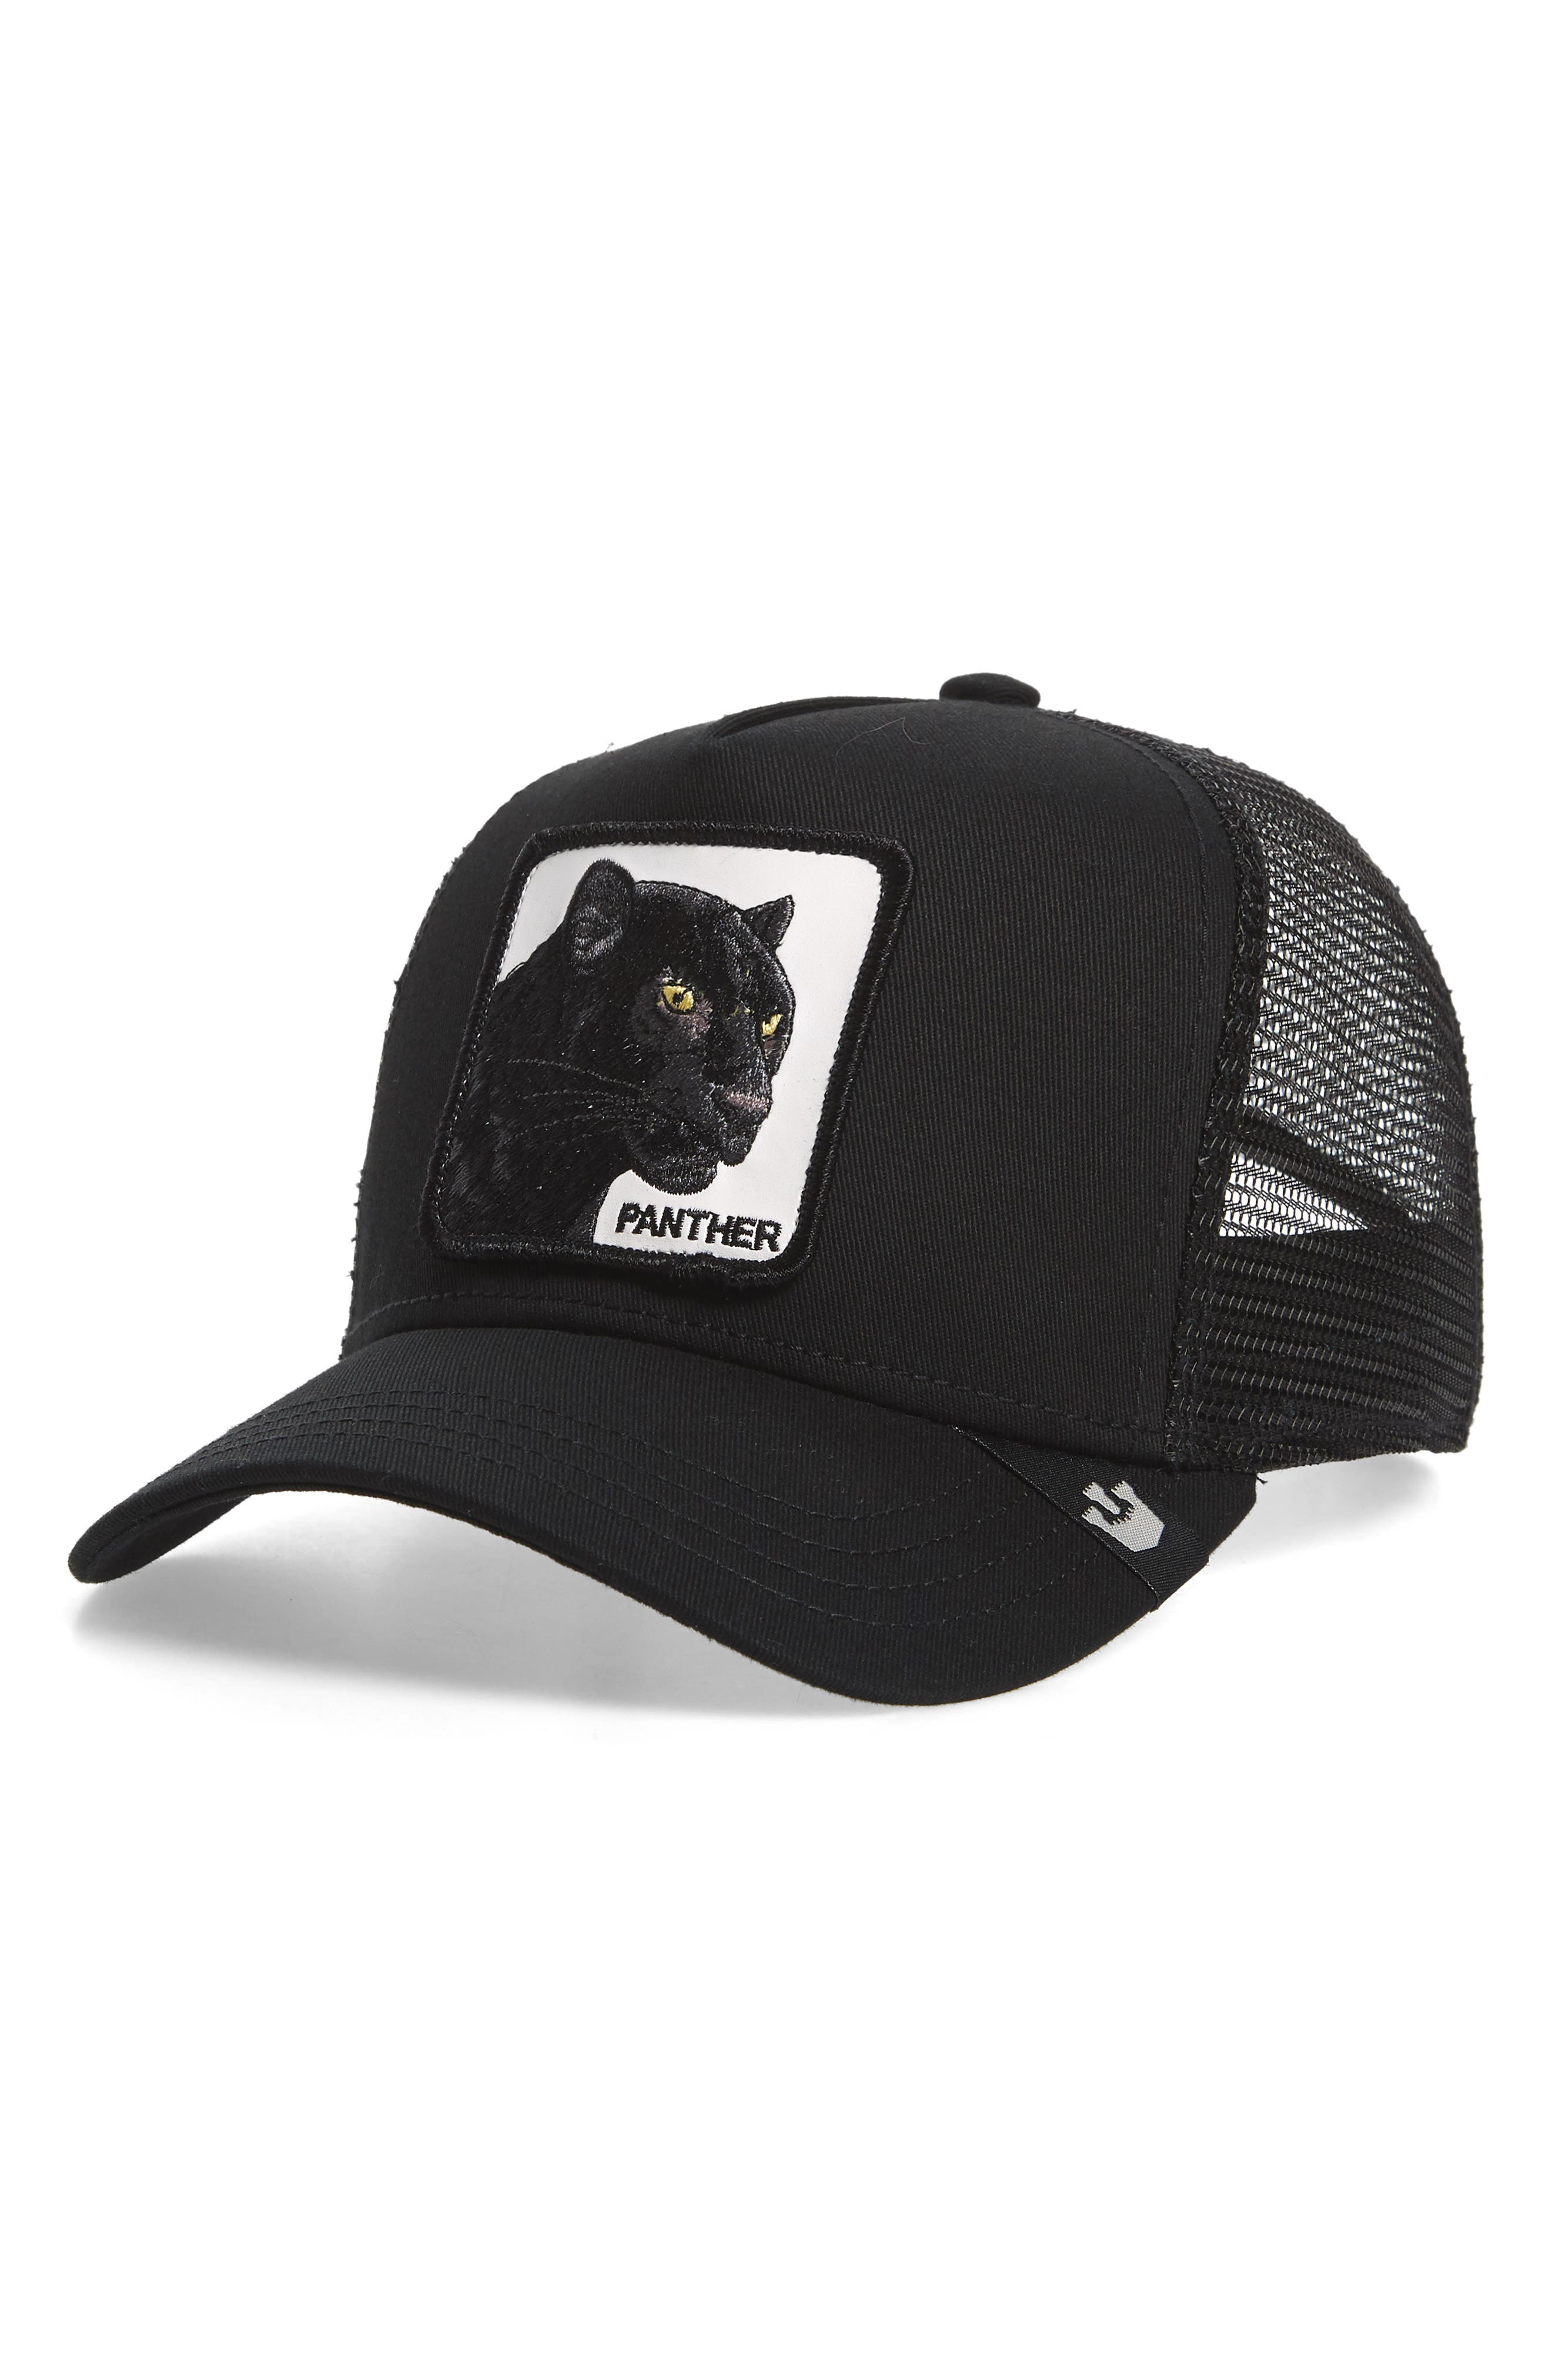 . Panther Trucker Hat